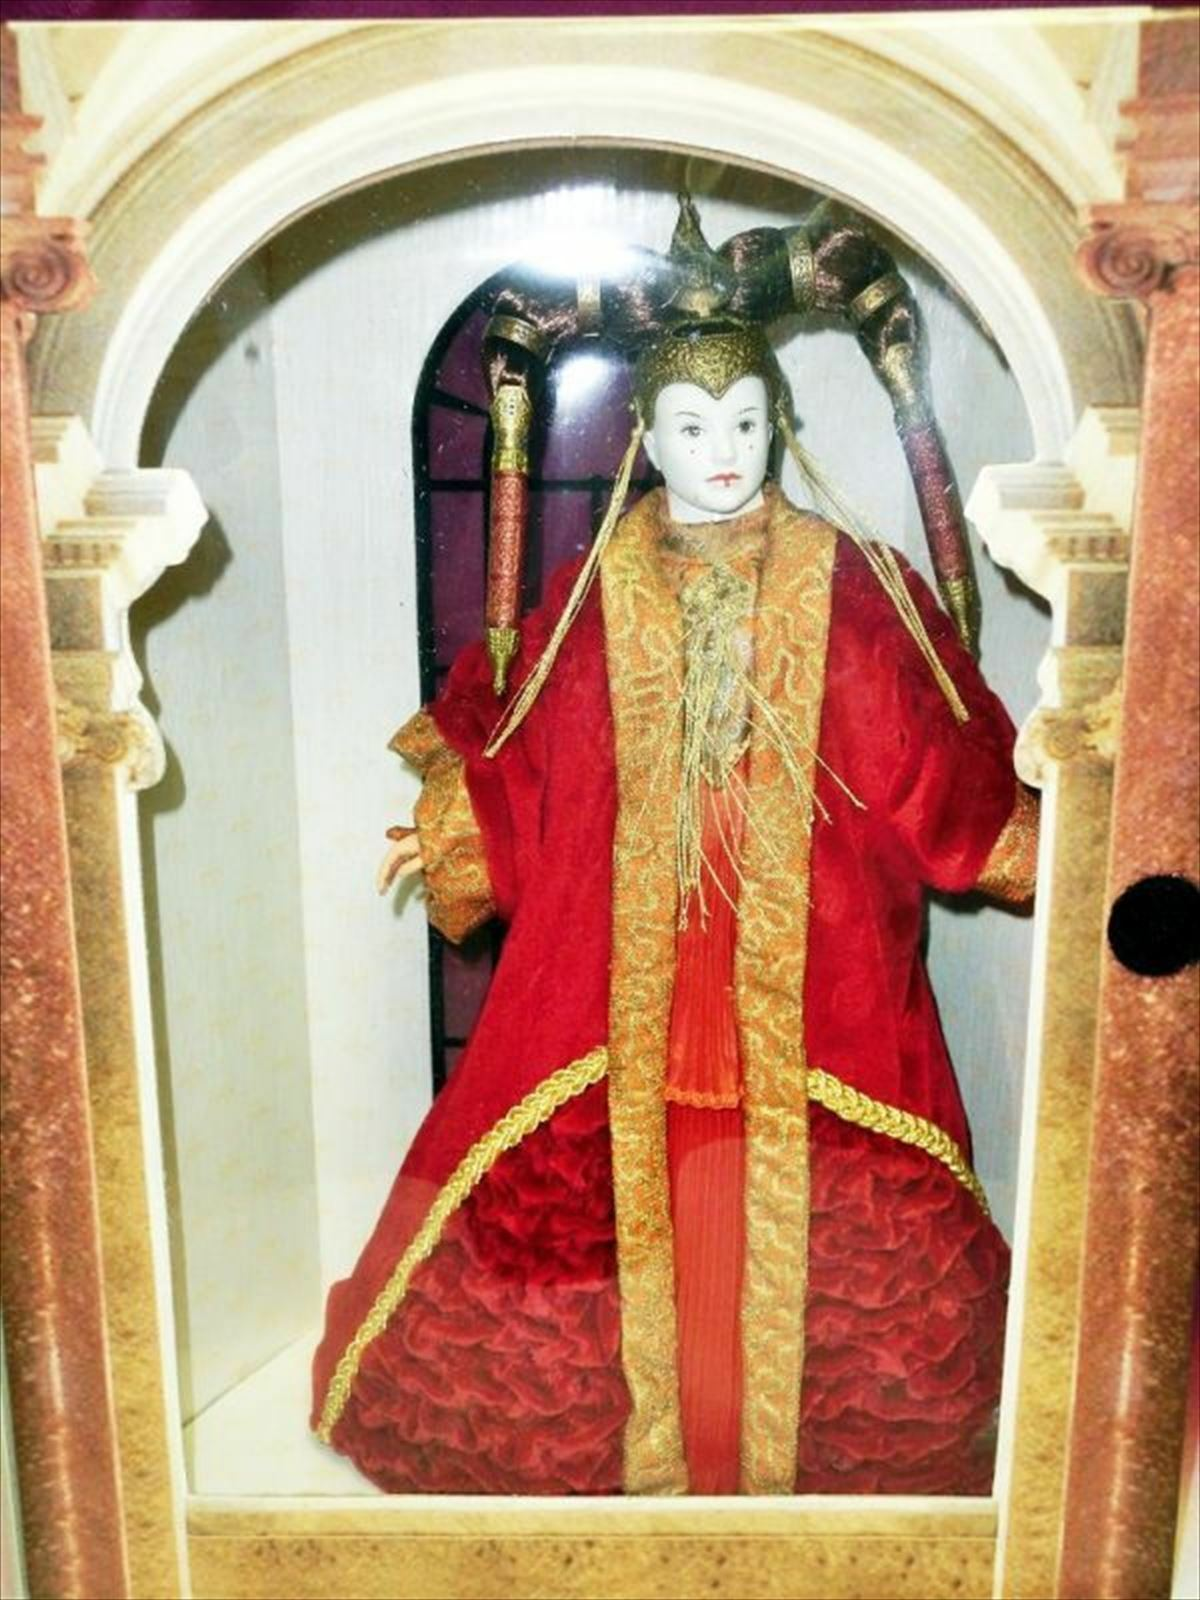 STAR WARS Episode Episode Episode 1 Queen Amidala 1999 Portrait Edition from JAPAN F/S 2d293a